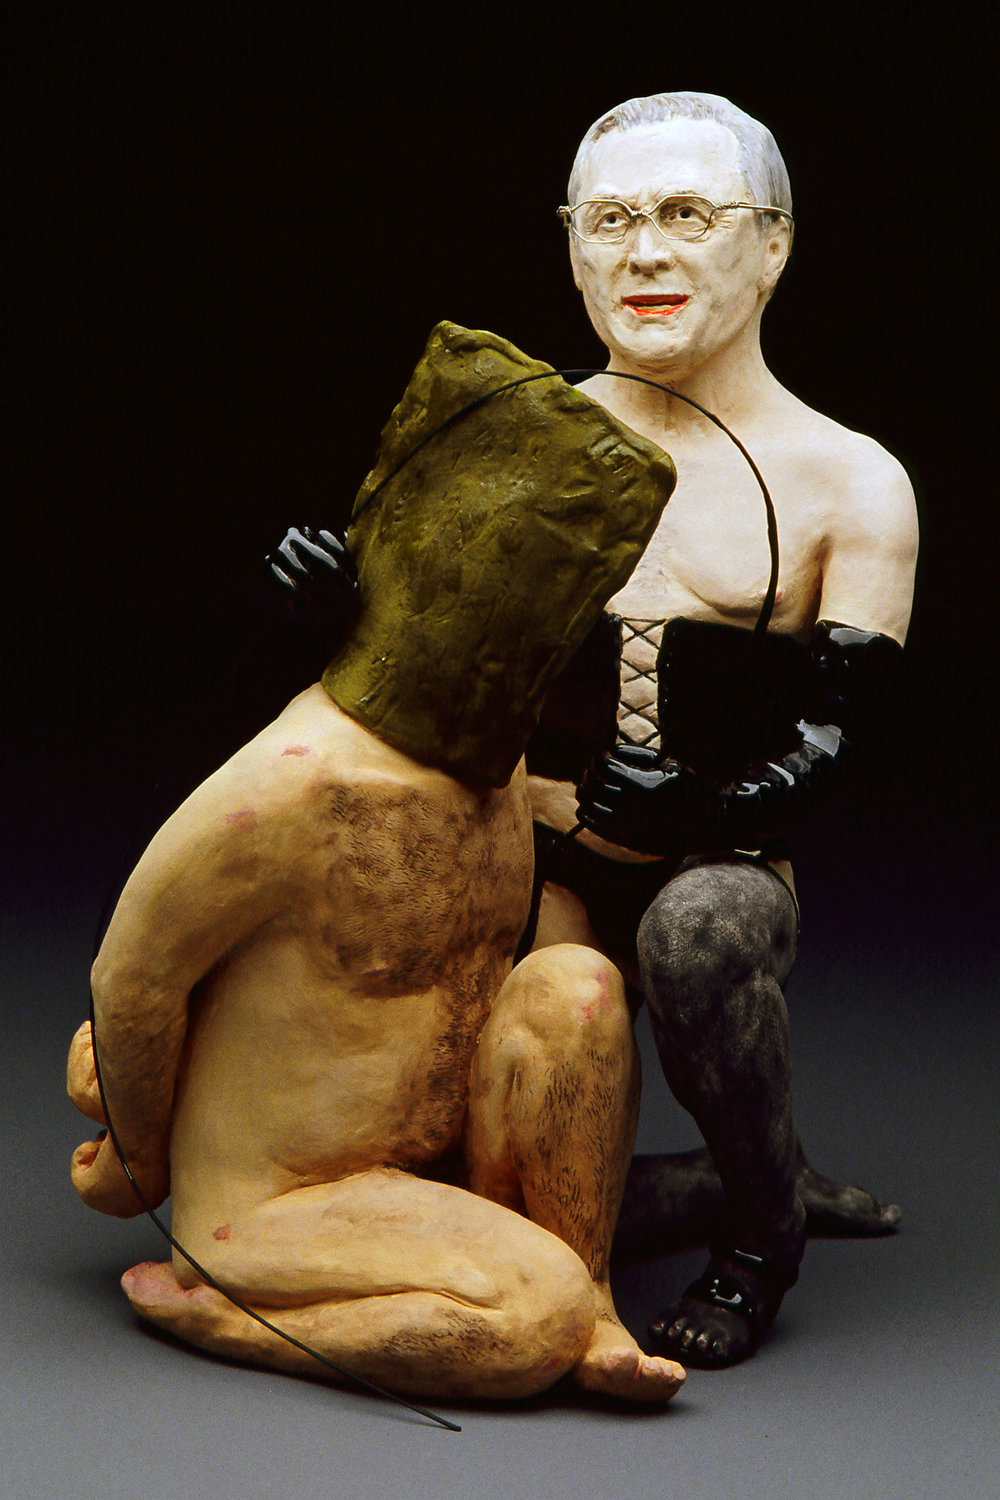 "IRAQI HORROR , 2004  9.5"" by 6.25"" by 6""  bisqued porcelain, underglazes, low-fire glazes, guitar string"